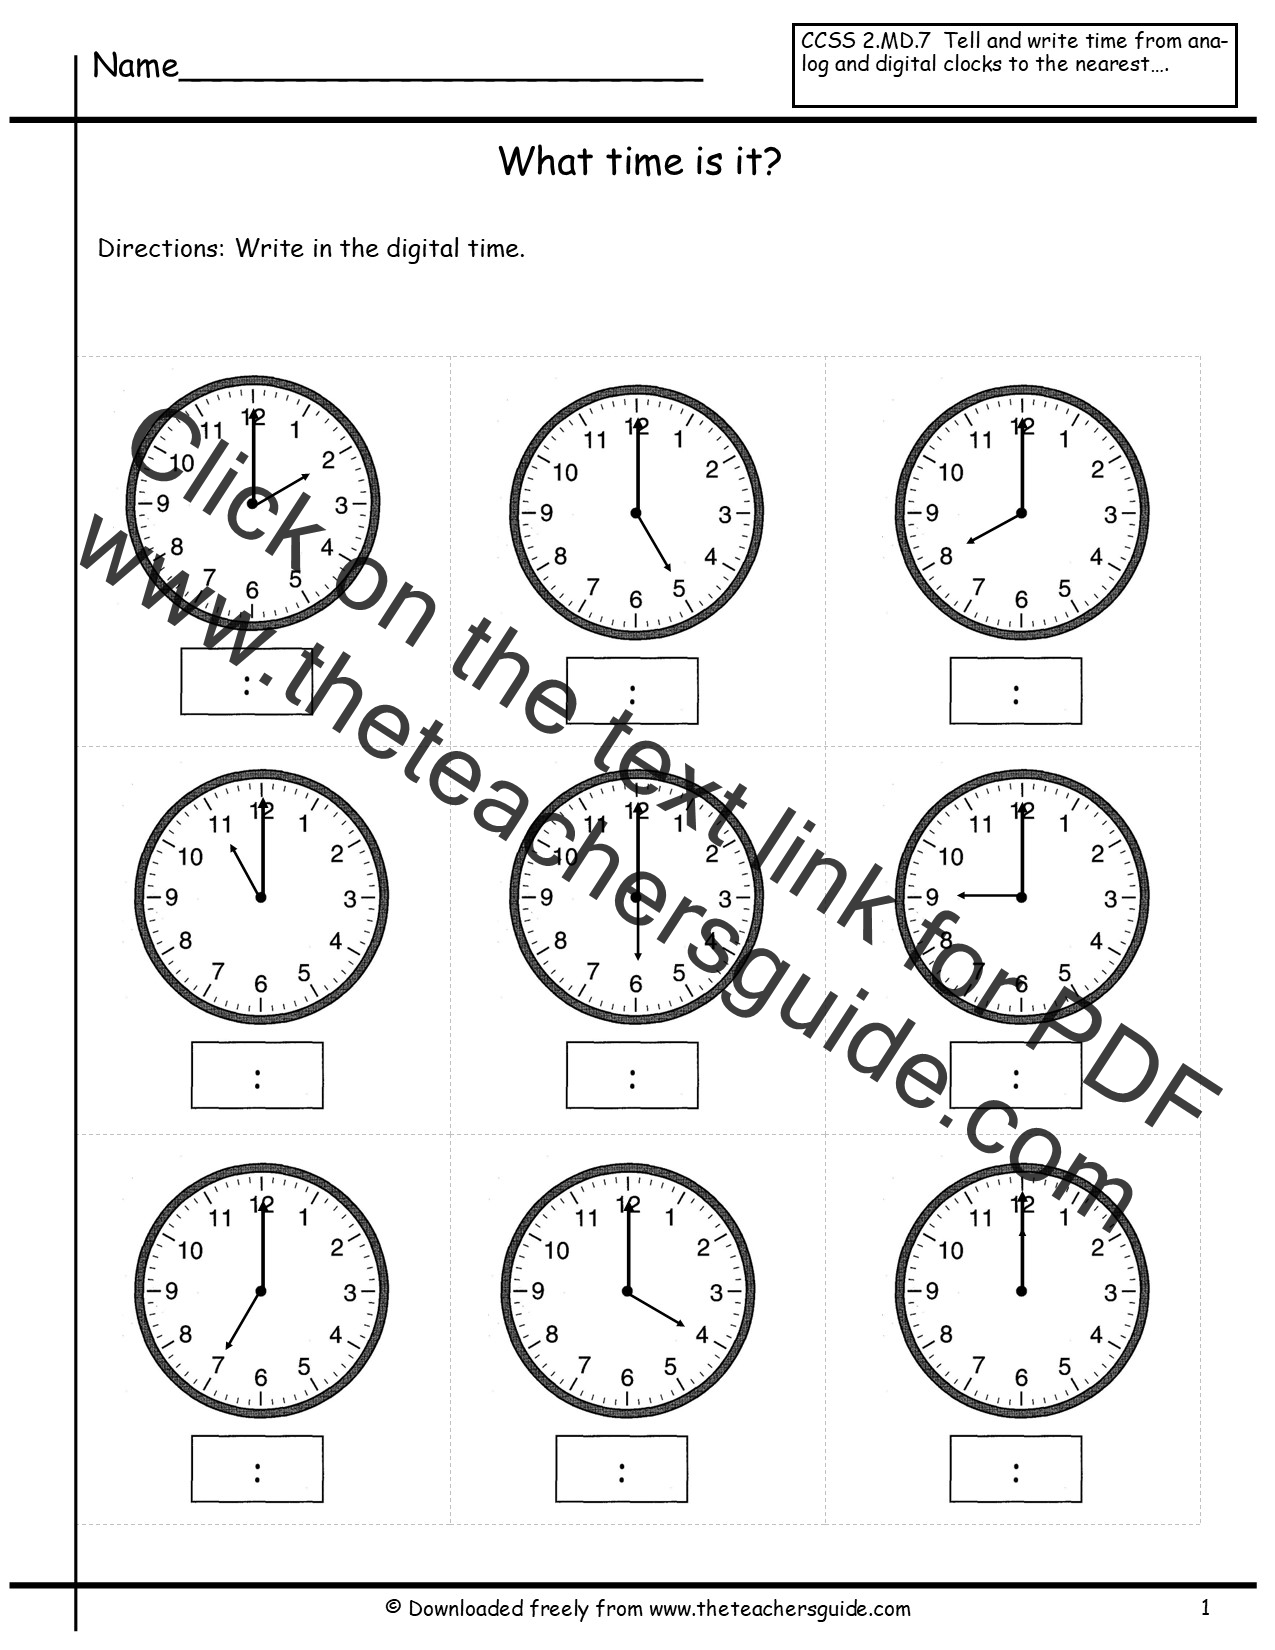 Time Worksheet New 333 Telling Time Worksheet In English